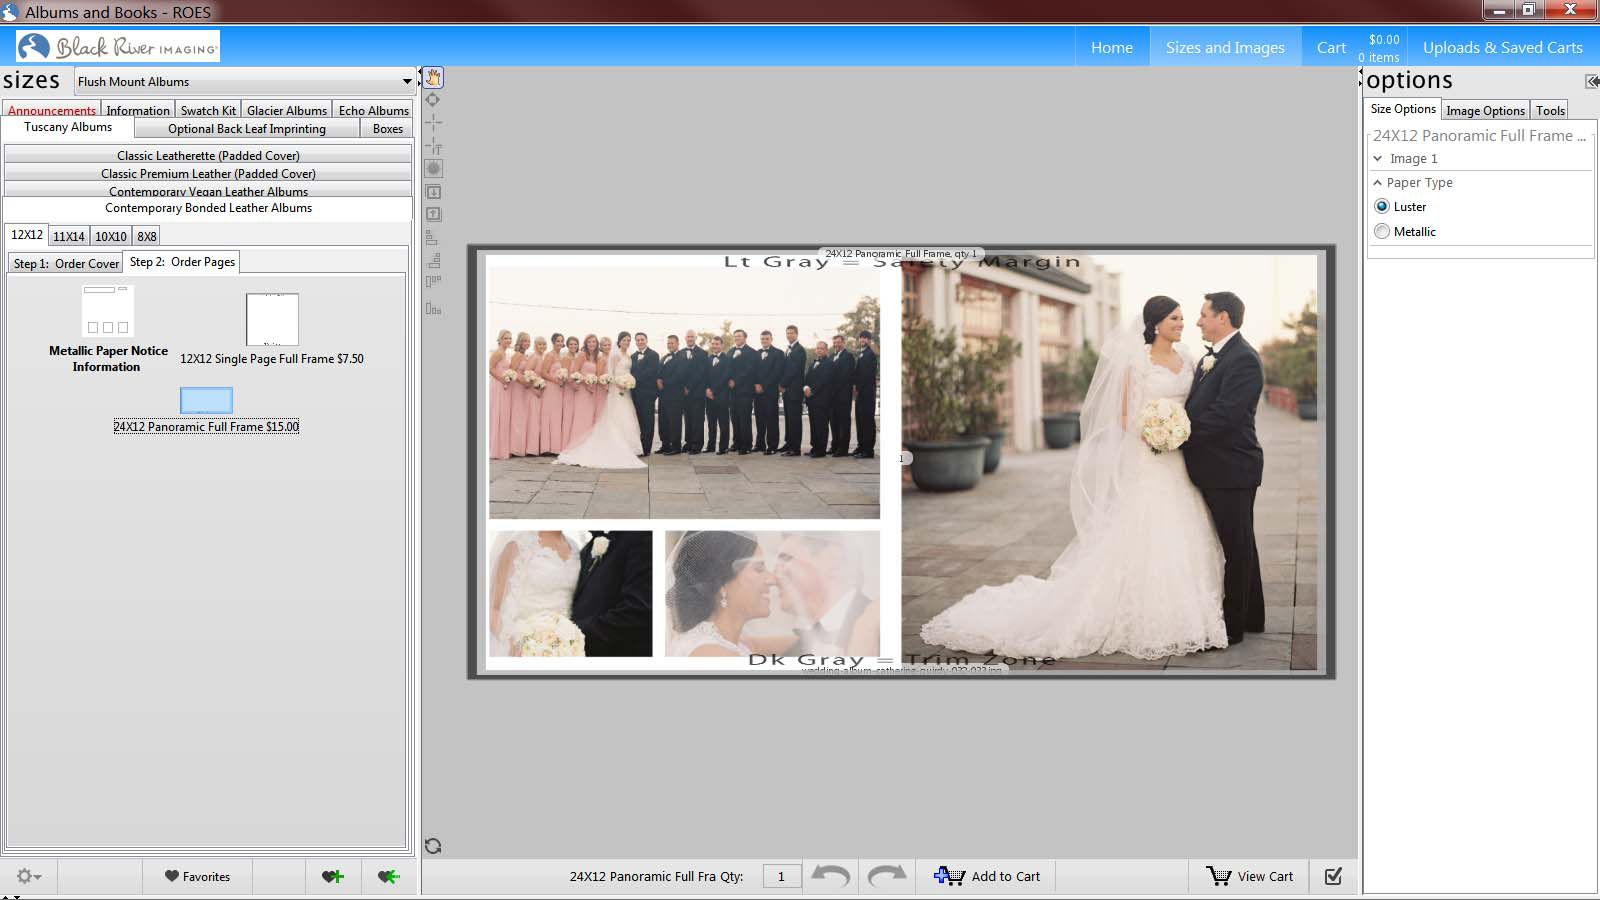 Ordering Wedding Album in ROES Albums & Books Software